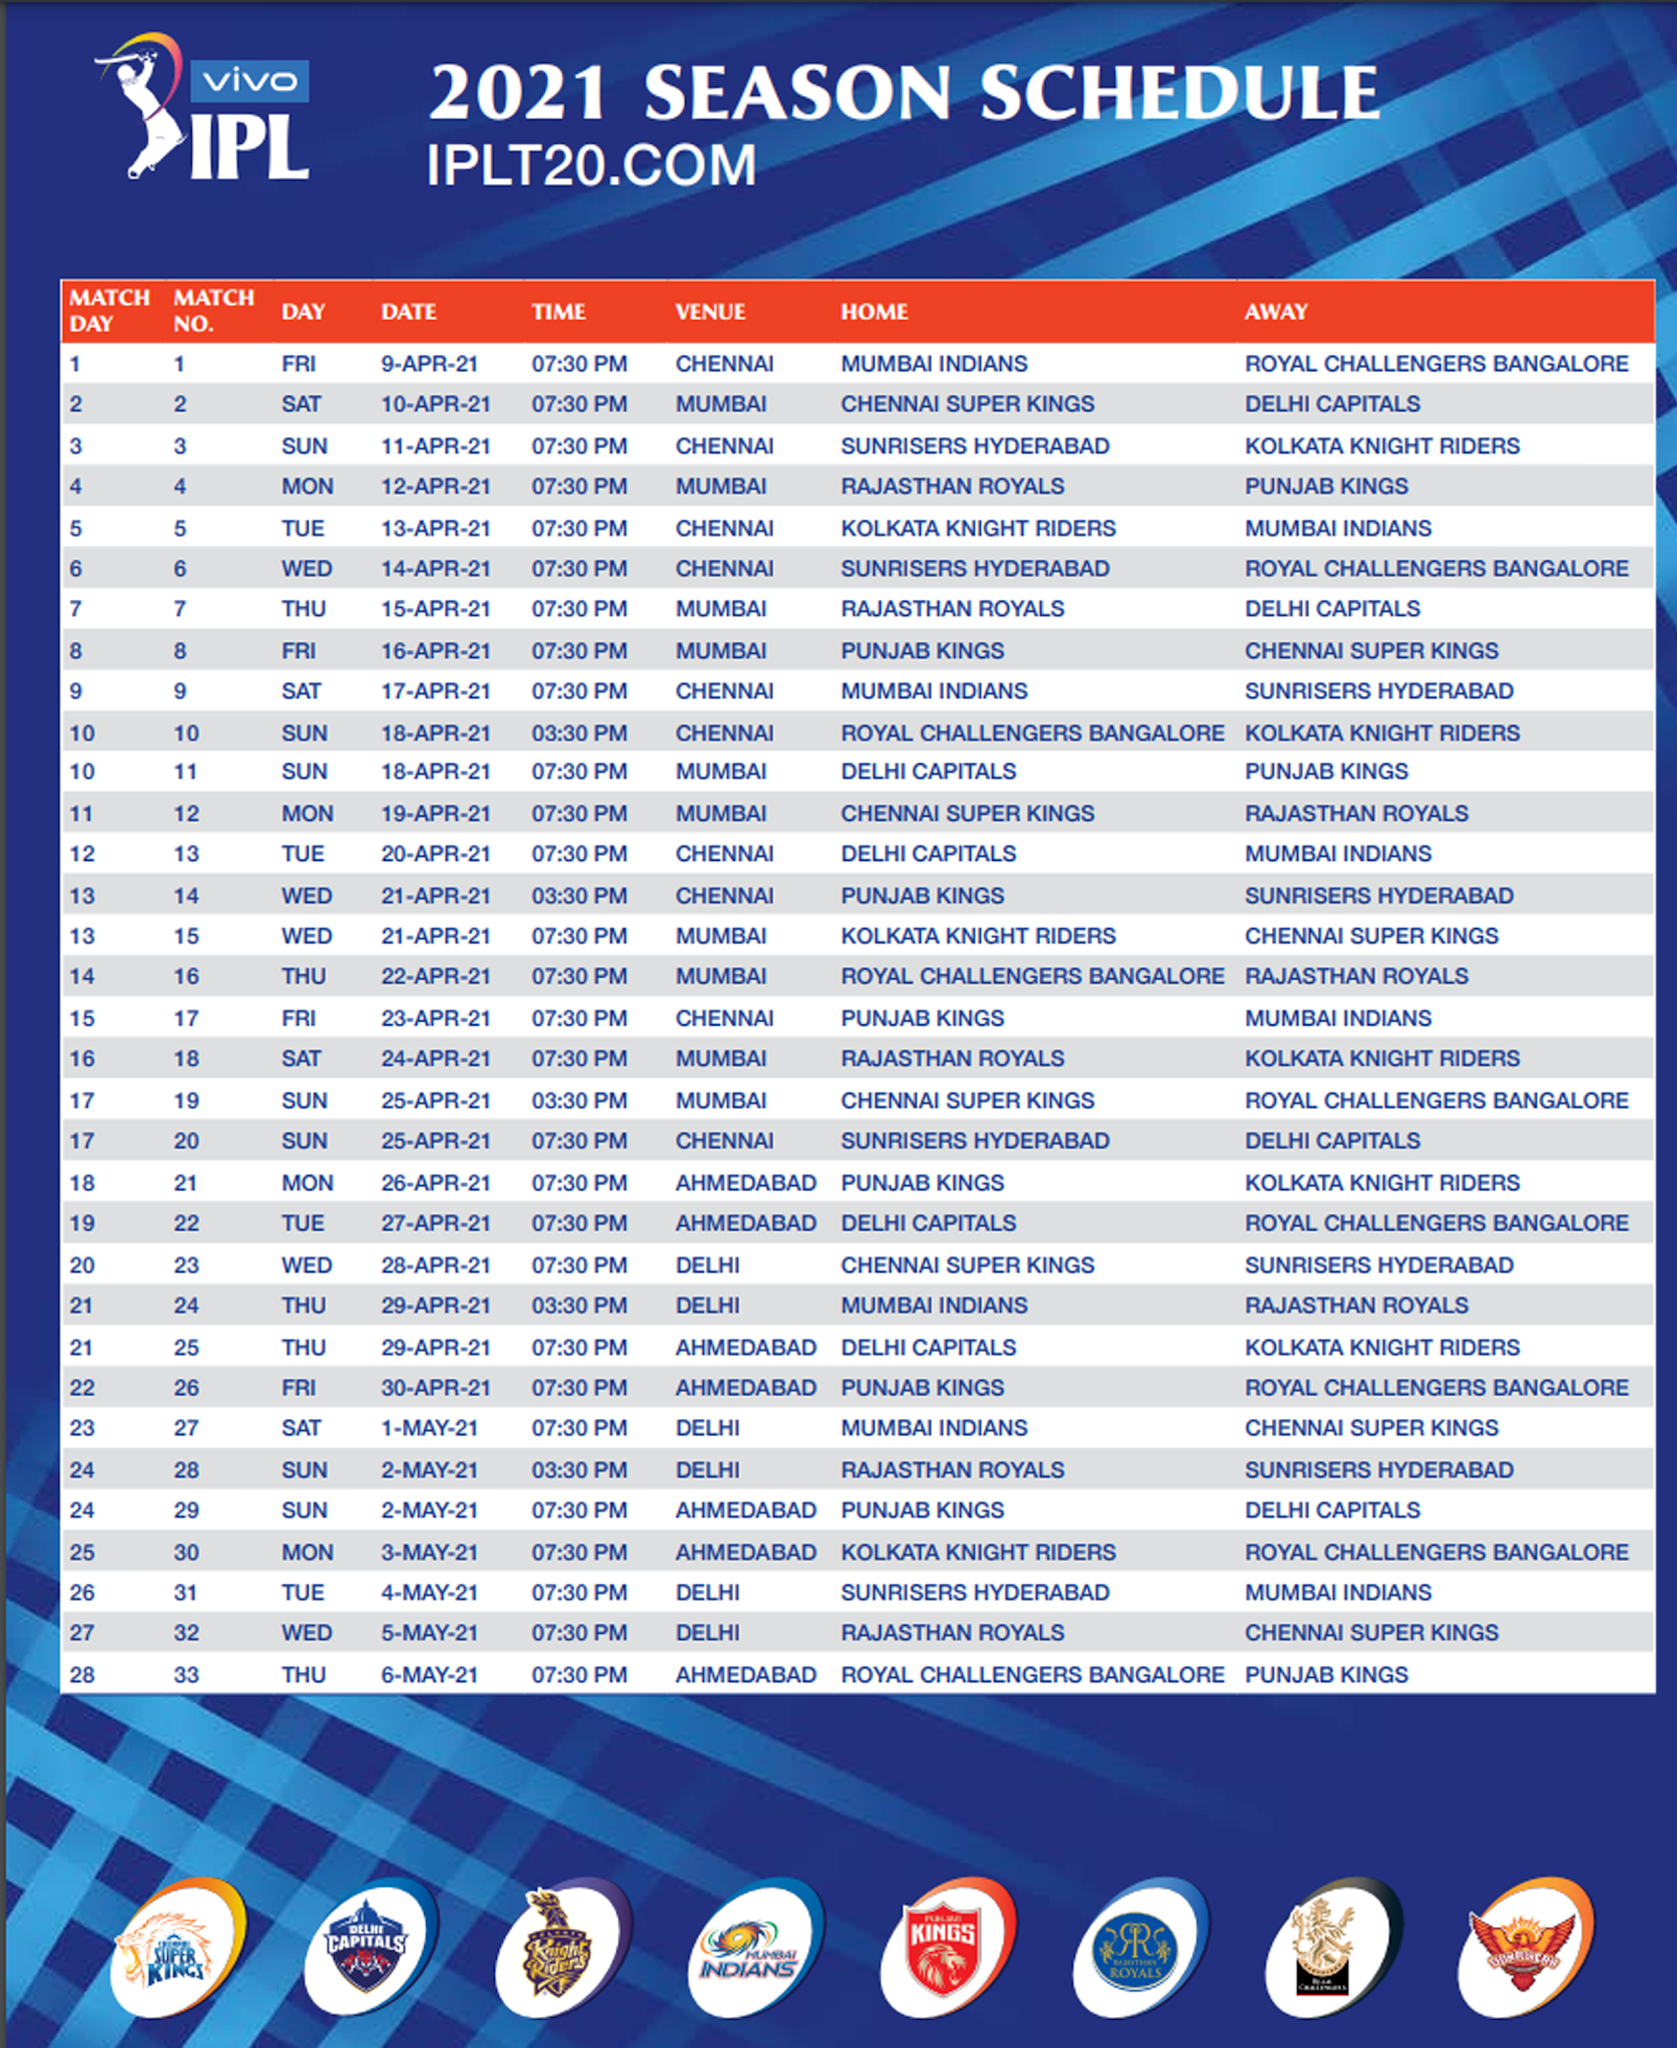 IPL 2021 Schedule Dates PDF, Indian Premier League 2021 Time Table PDF, JPG Photos For Mobile and Compouter, IPL 2021 schedule time table, VIVO IPL schedule full complete schedule is announced - IPLT20.com, Espncrickinfo, Cricbuzz, IPL 2021: Time Table, Match Schedule, Points Table, Results.